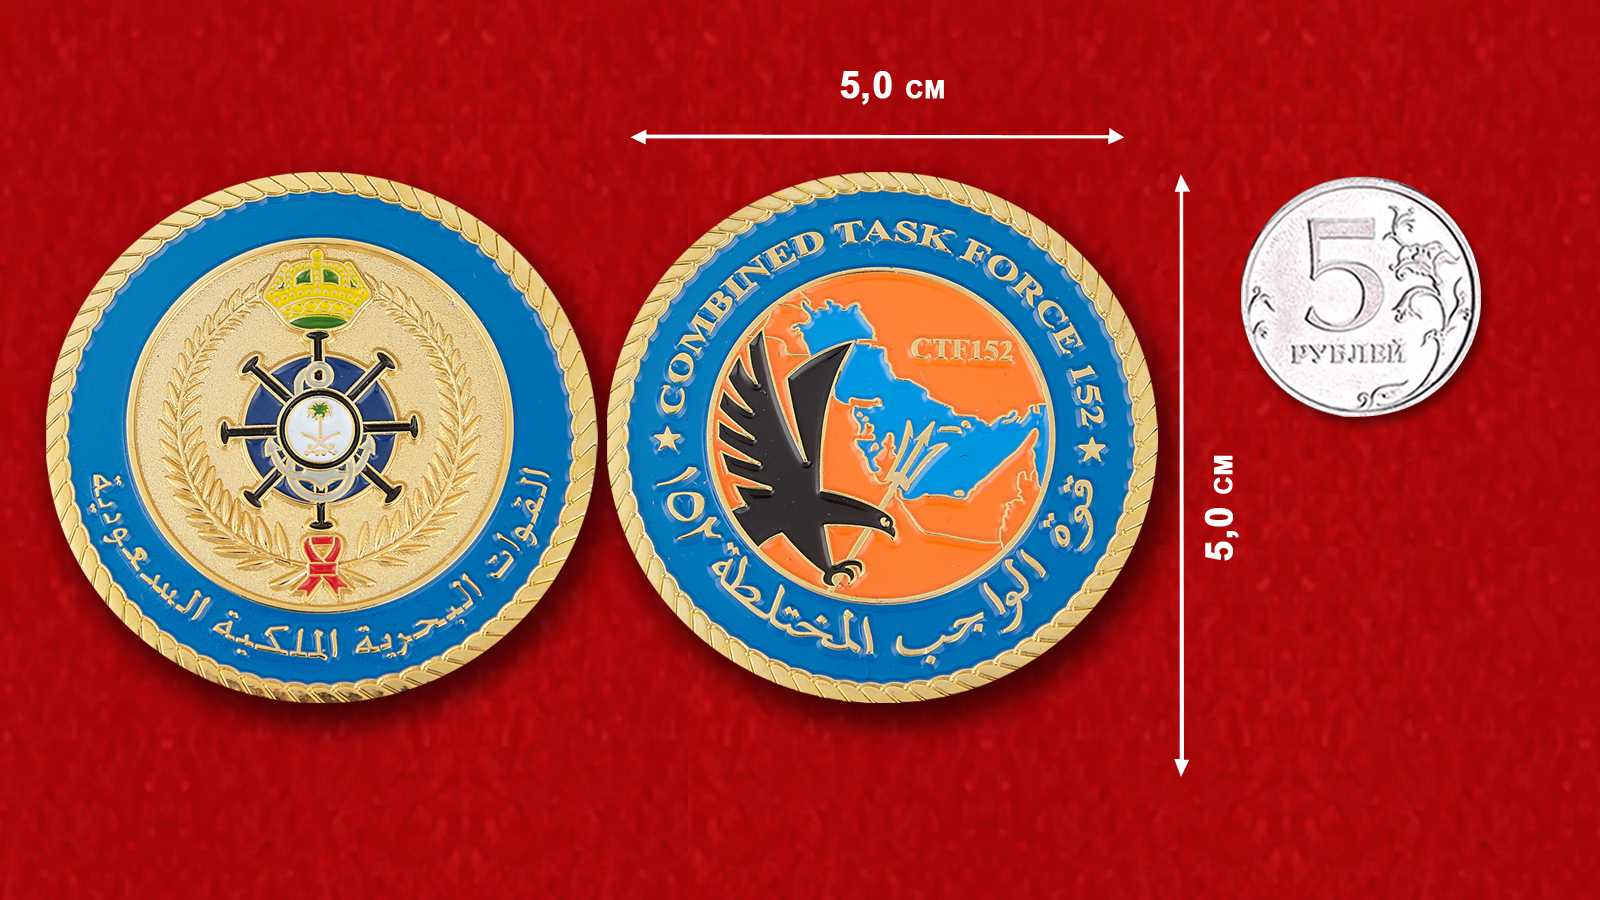 The Arabian Gulf CMF Combined Task Force 152 Challenge Coin